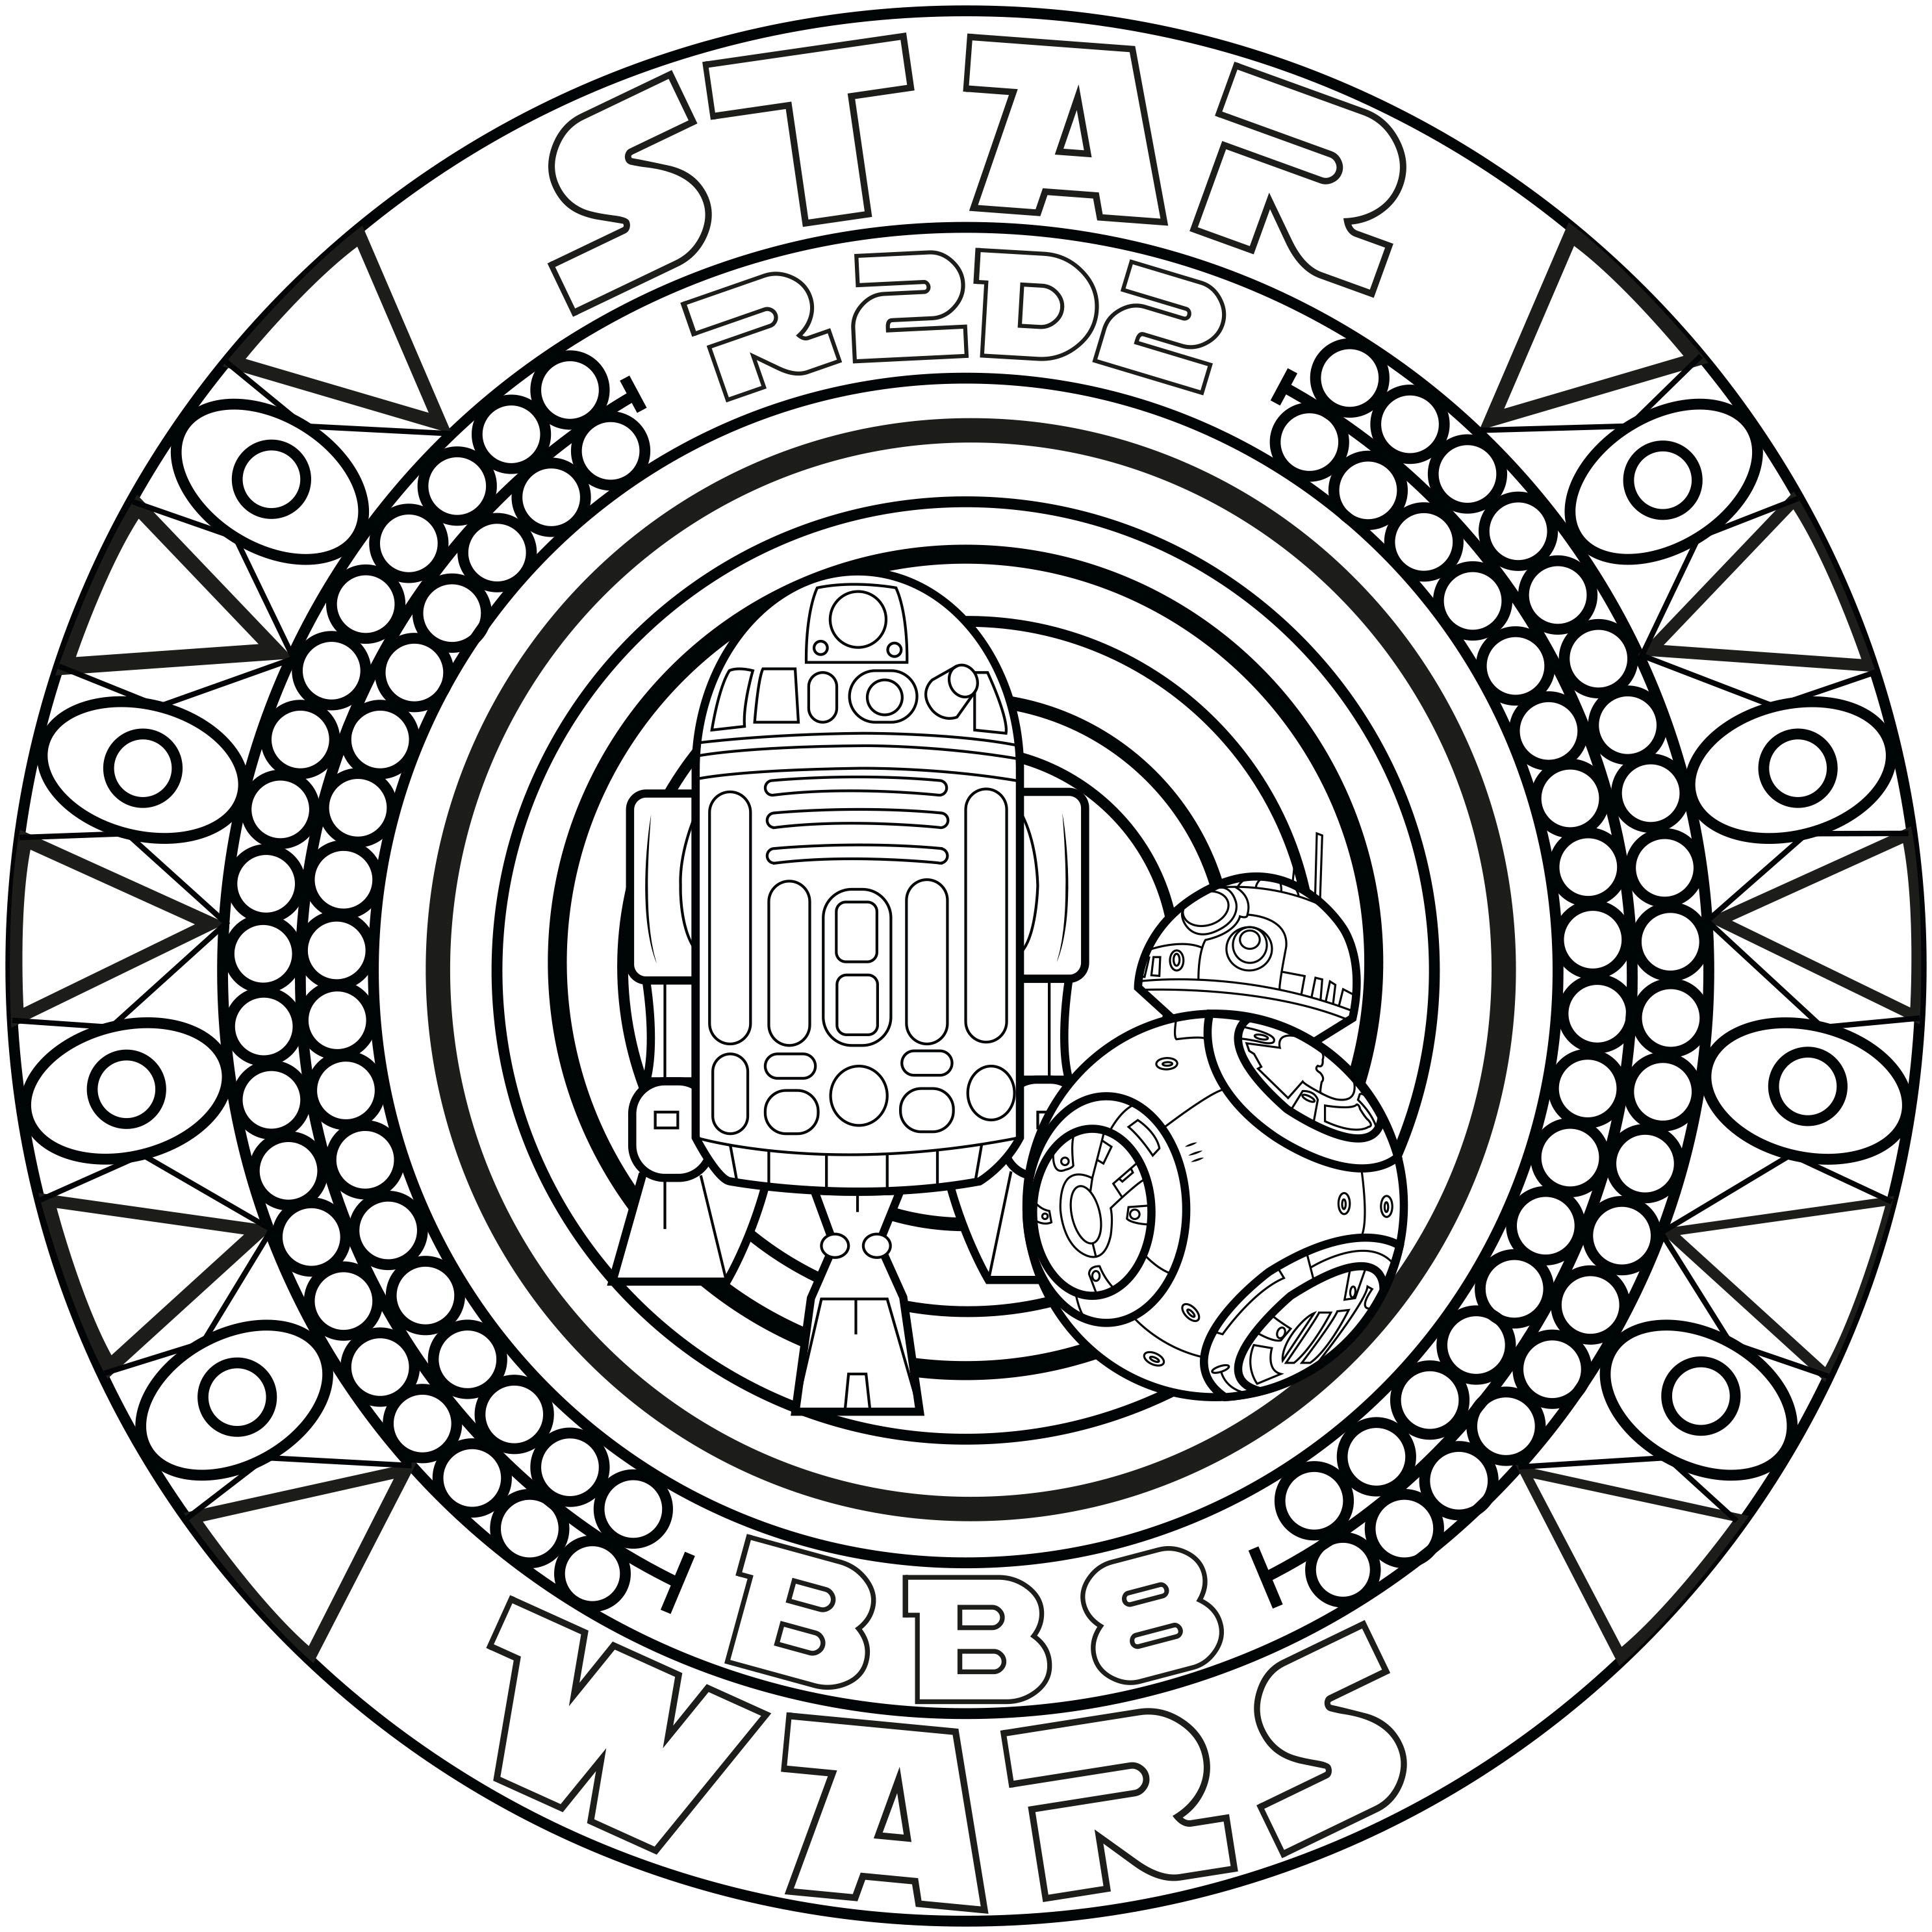 Pin by Катя Осинская on Раскраски 2 | Star wars coloring ...